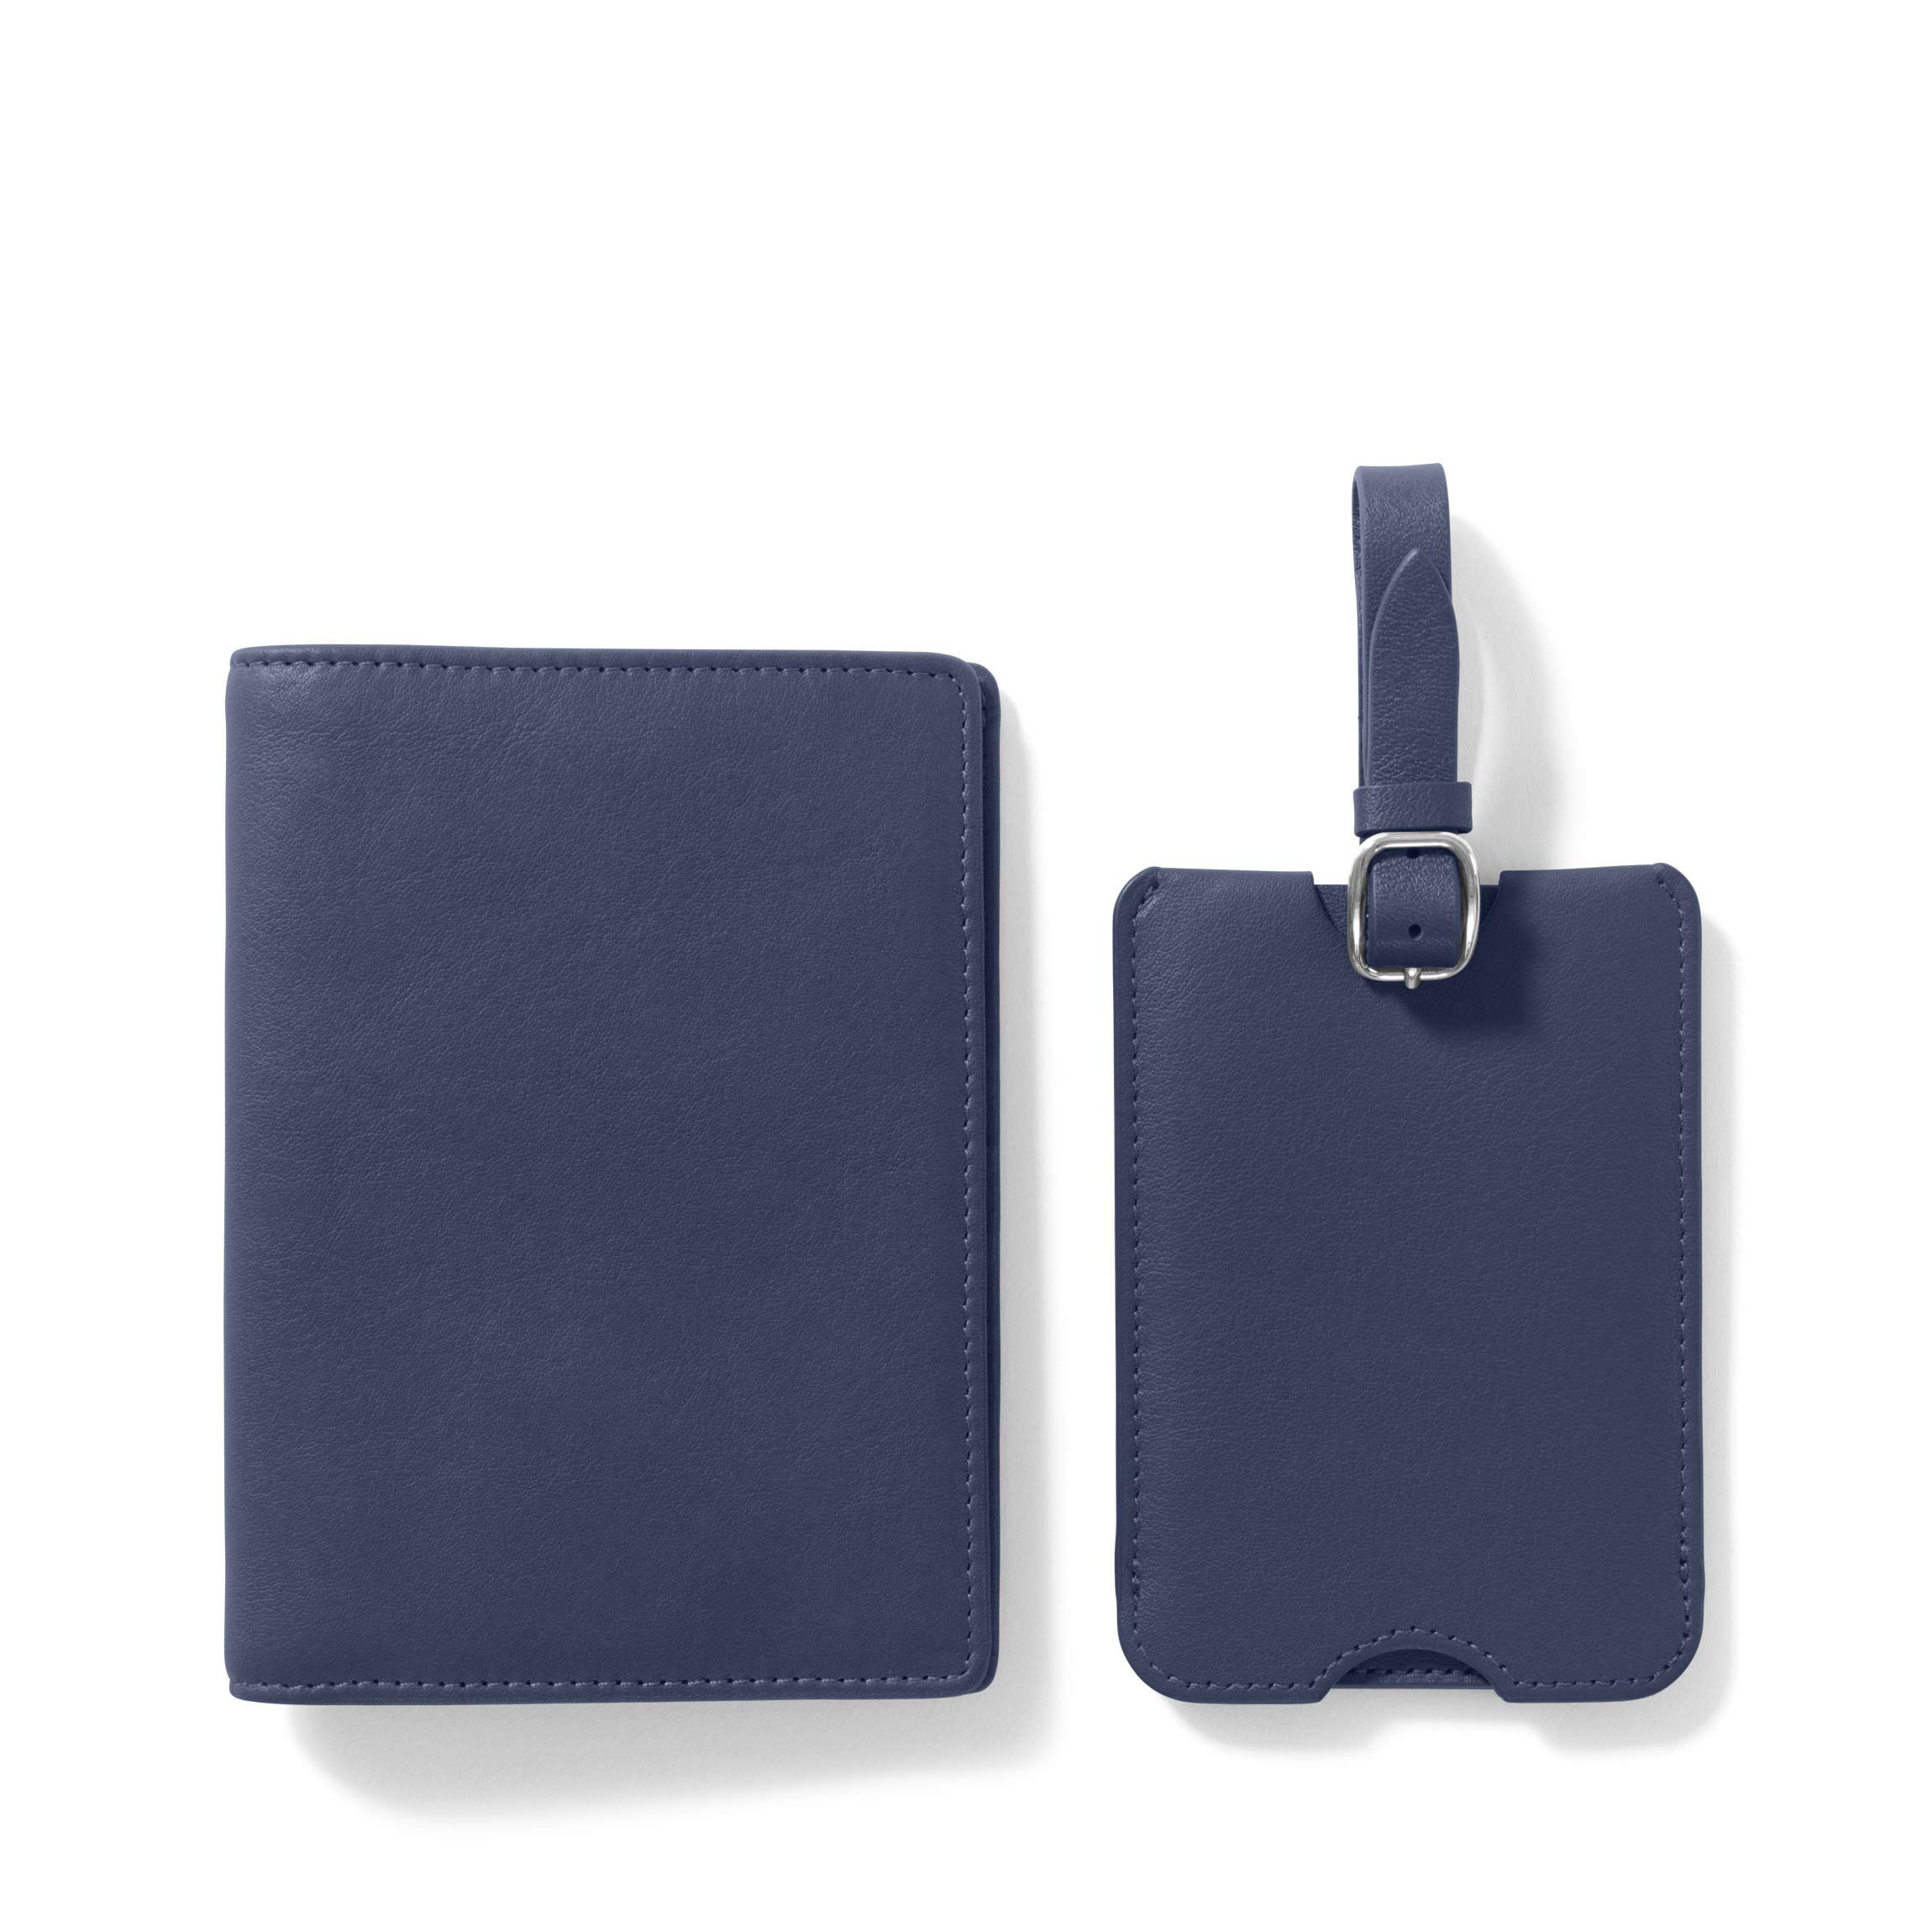 Deluxe Passport Cover + Luggage Tag Set - Full Grain Leather - Navy (blue)